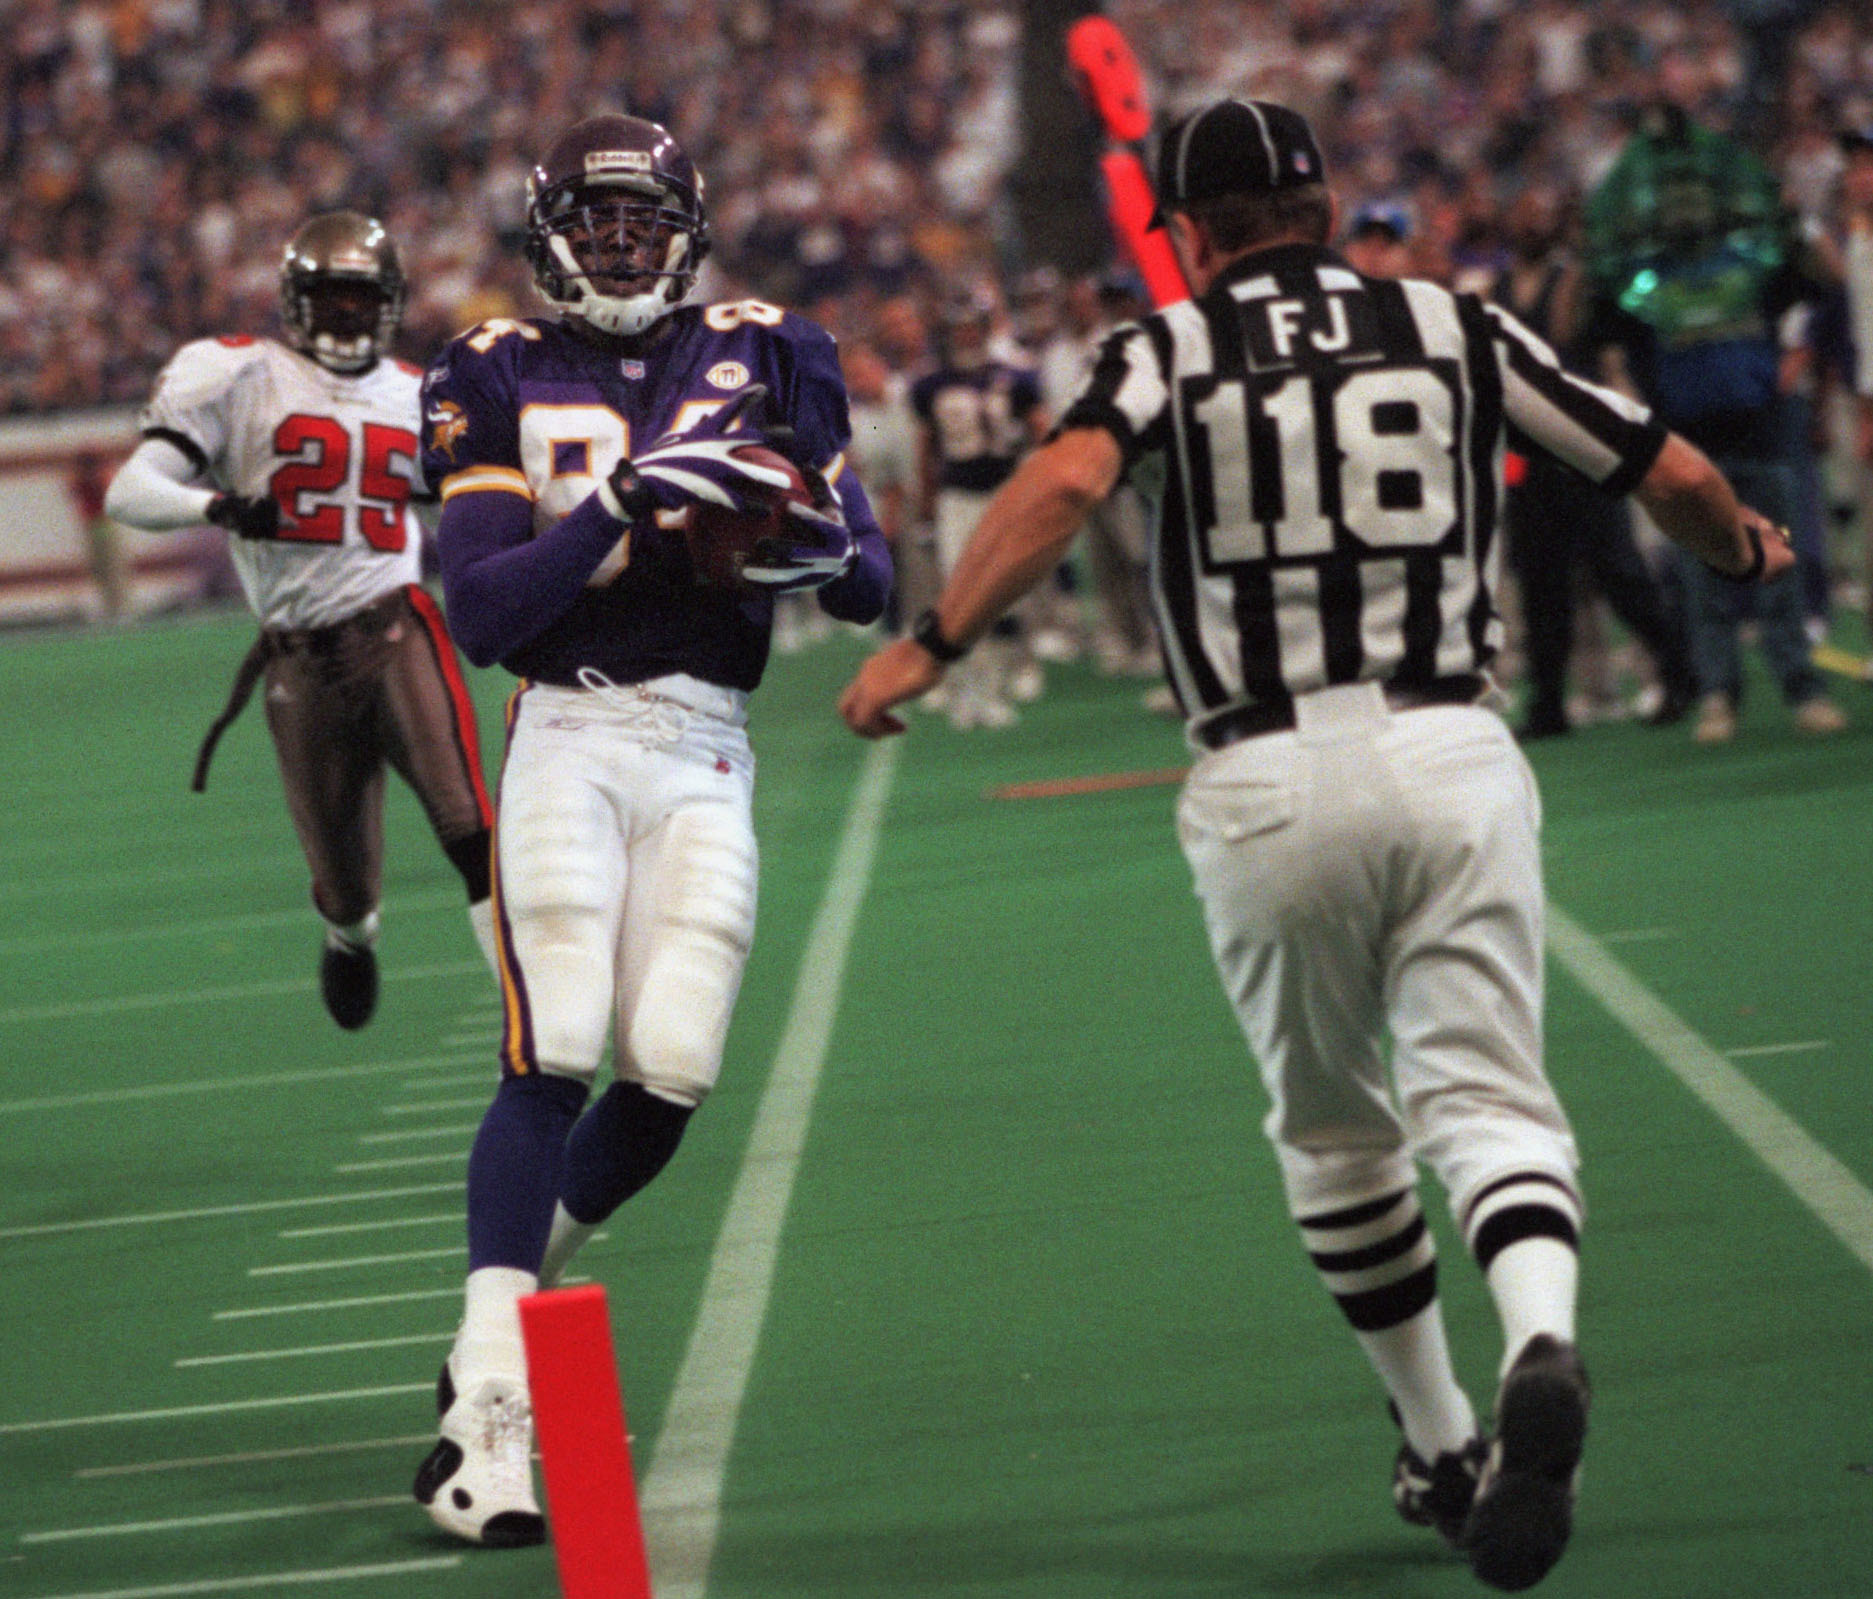 GENERAL INFORMATION: 10/1/01 - Minneapolis, MN Minnesota Vikings vs. Tampa bay at the Metrodome IN THIS PHOTO: Randy Moss makes a thirty-nine yard reception during the third quarter. The Vikings scored a tocuhdown several plays later, but it was null